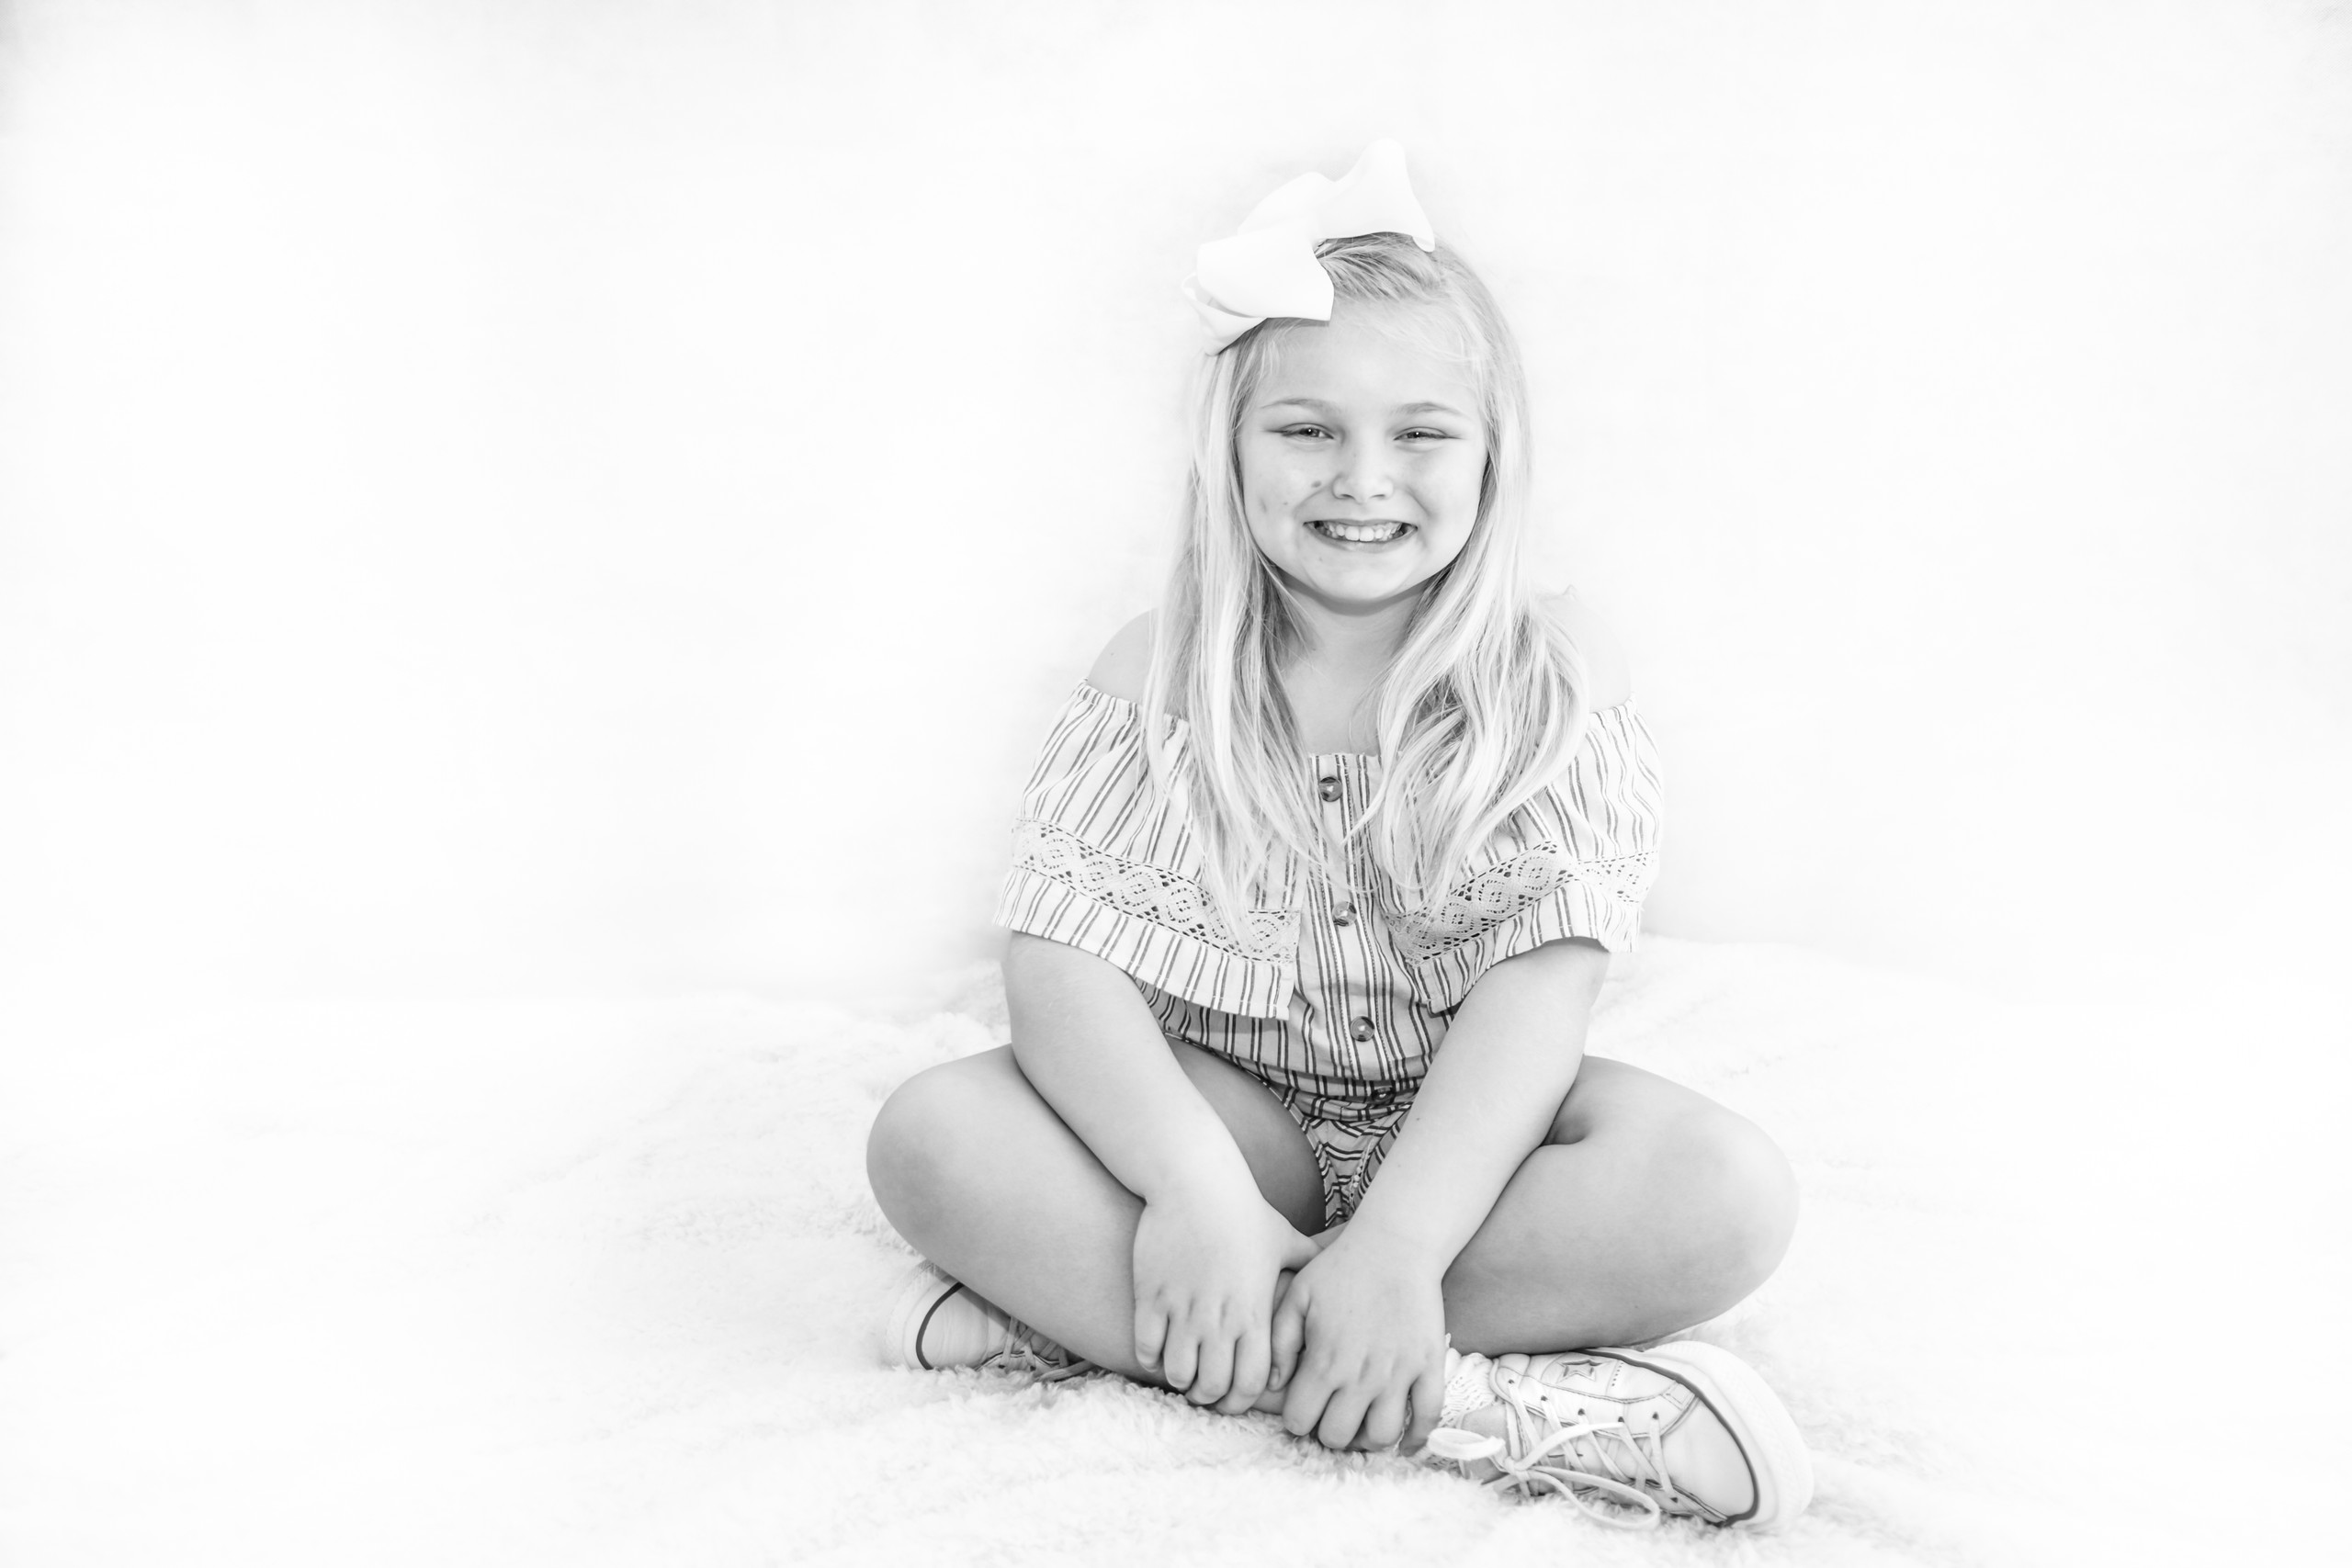 Swansea Family Portrait Black and White Photography of sitting child Photographer also covers the Gower, Carmarthenshire, Llanelli and South Wales for Babies, Children and Pets